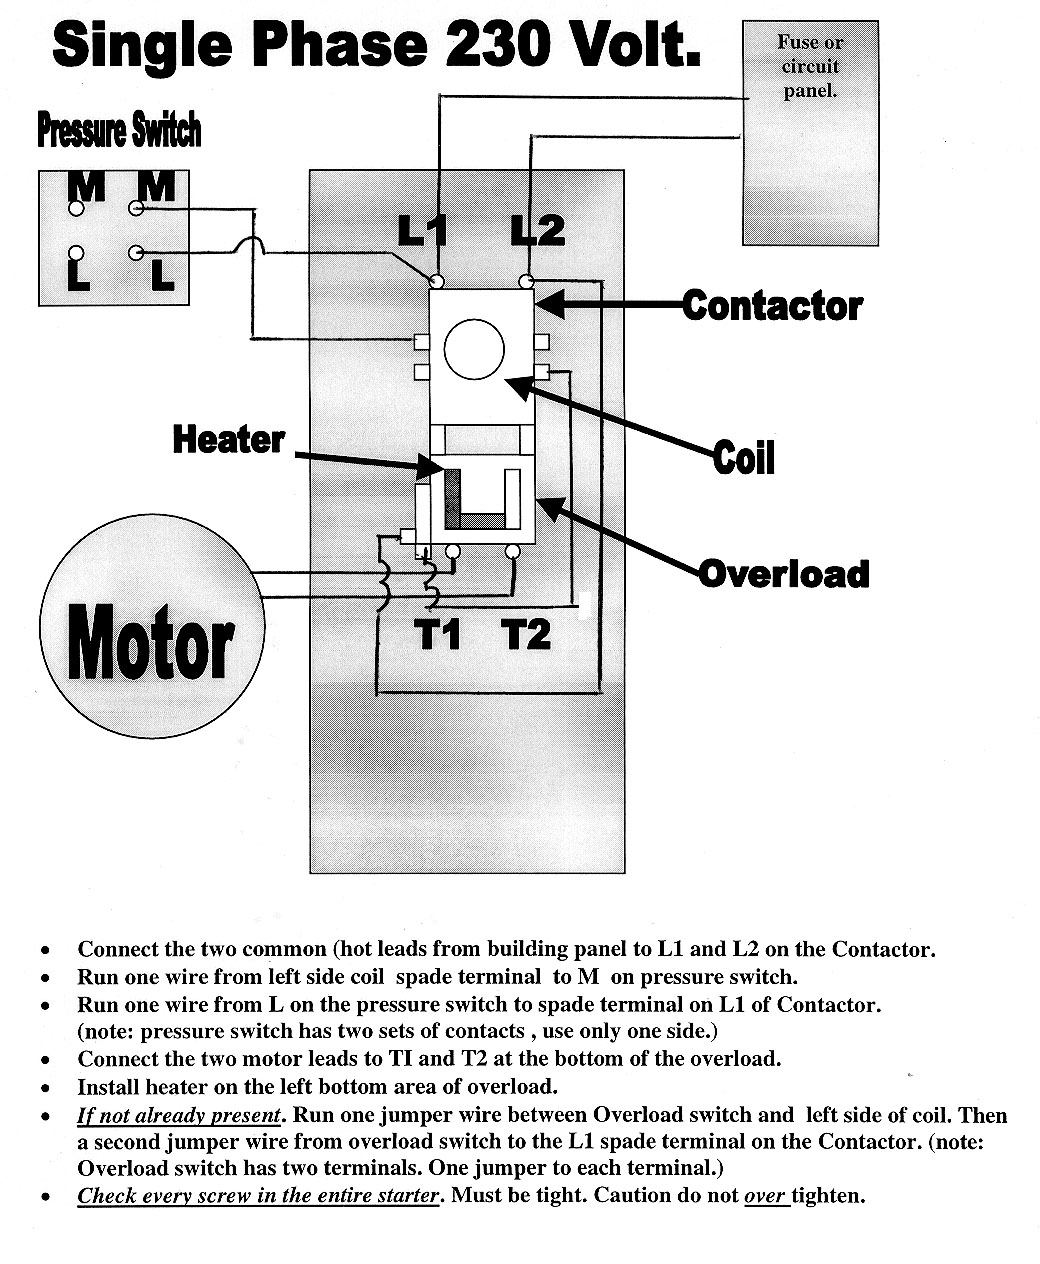 Reed Switch 3 Wire Diagram - Wiring Diagram & Electricity Basics 101 •